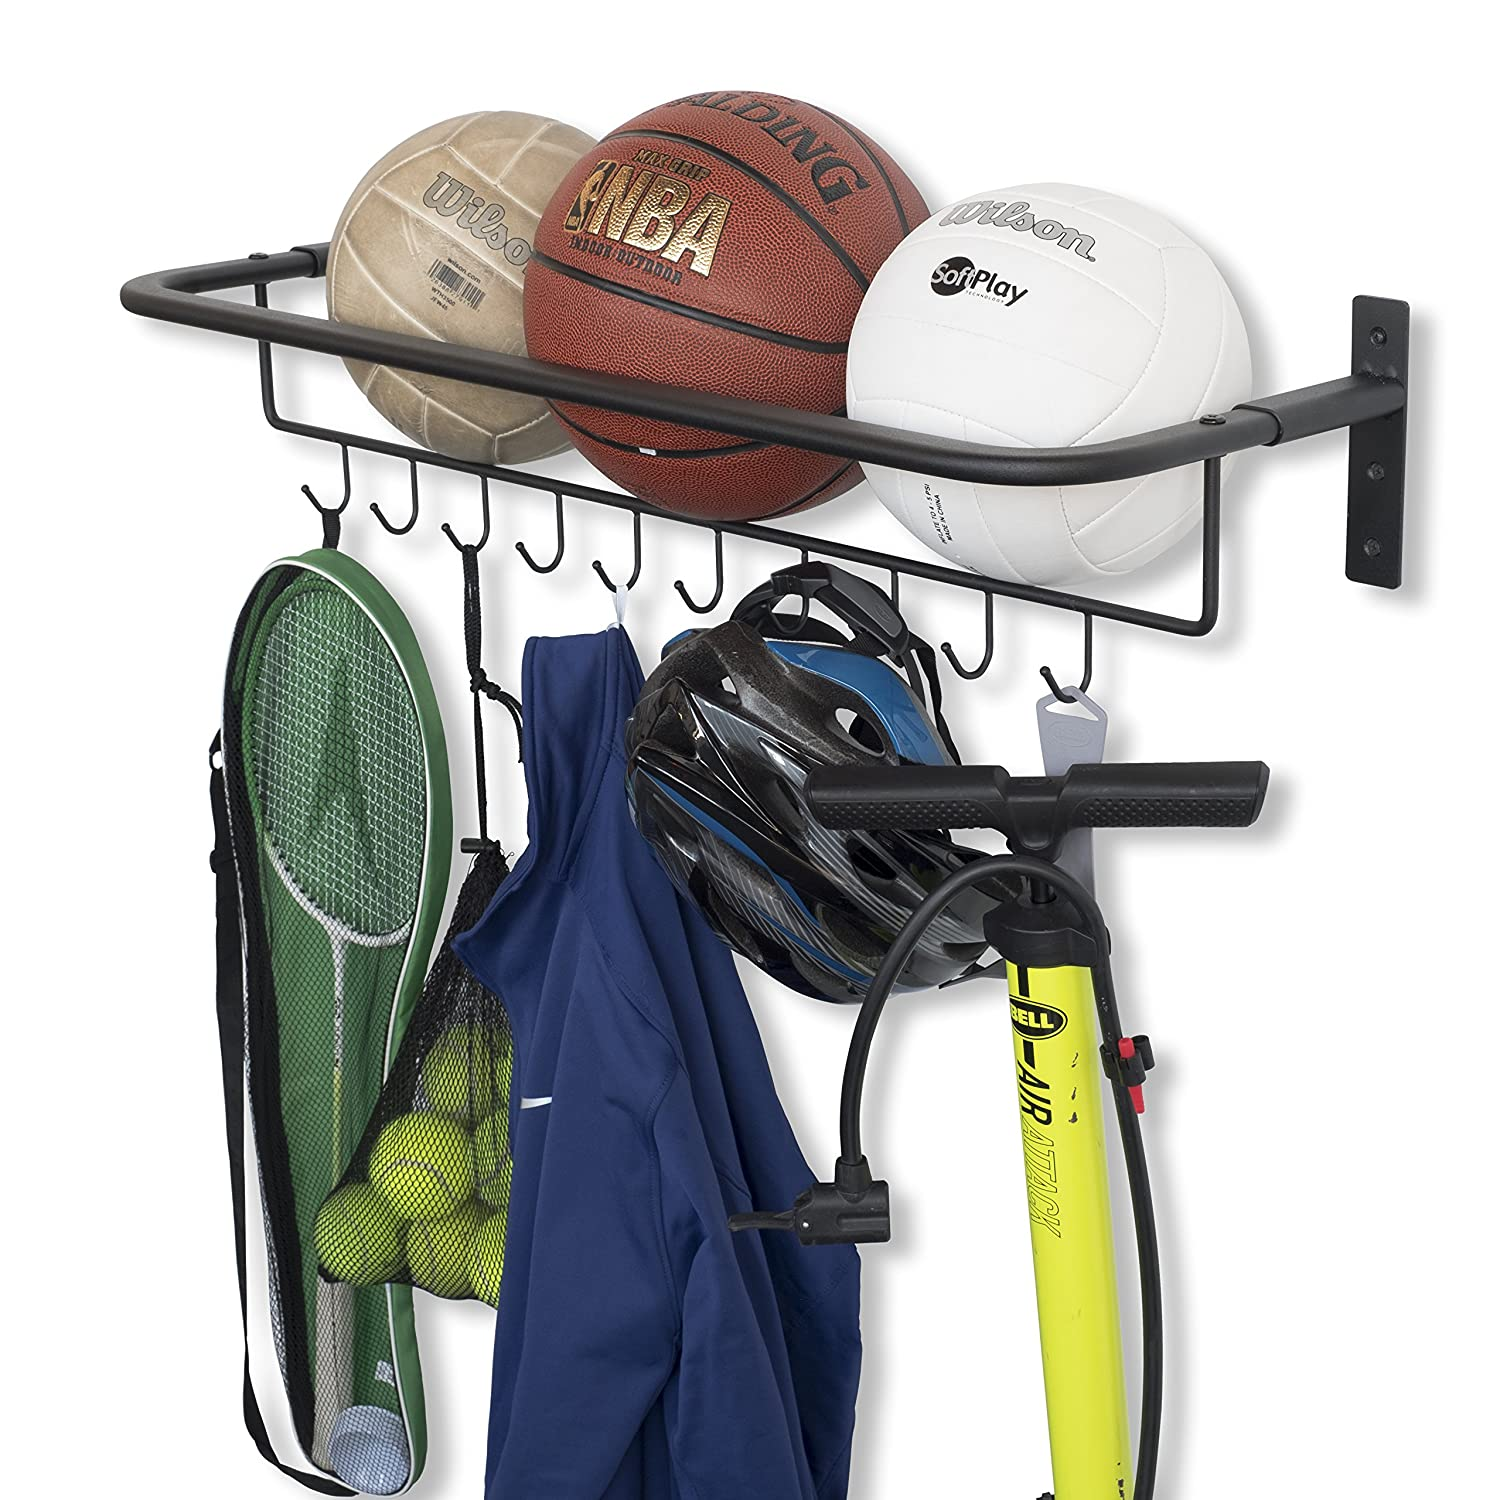 Wall Mount Metal Sports Ball and Gear Equipment Organizer Hanging Rack with Hooks in Black 32 Inch Long Brightmaison